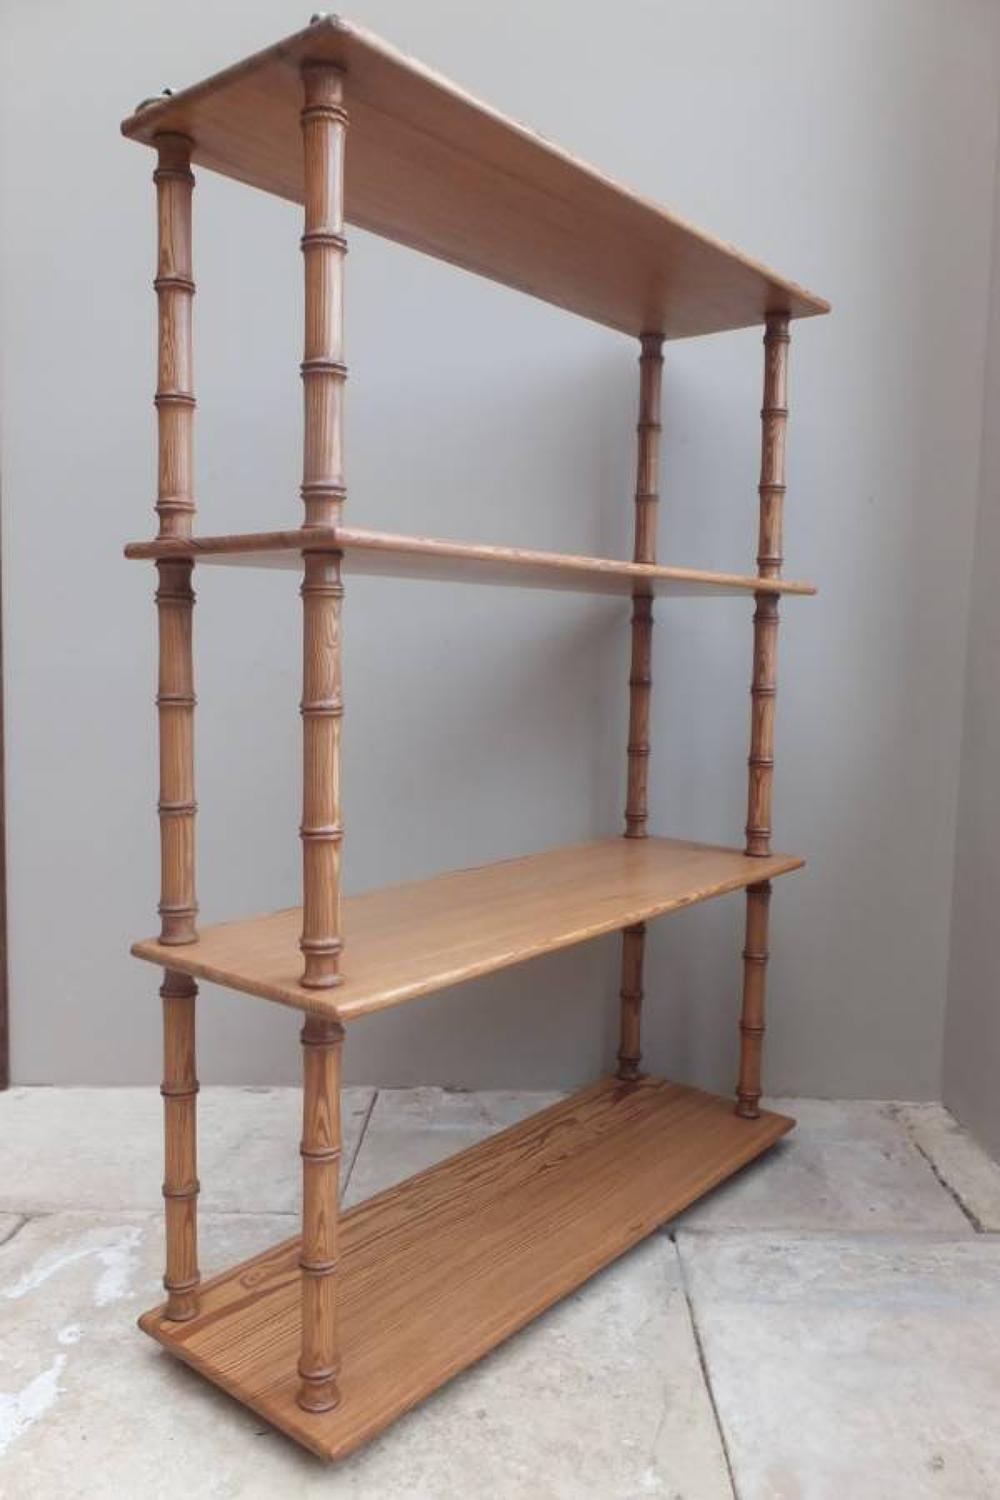 Quality Regency Pine Shelves - Faux Bamboo Supports with Brass Rods